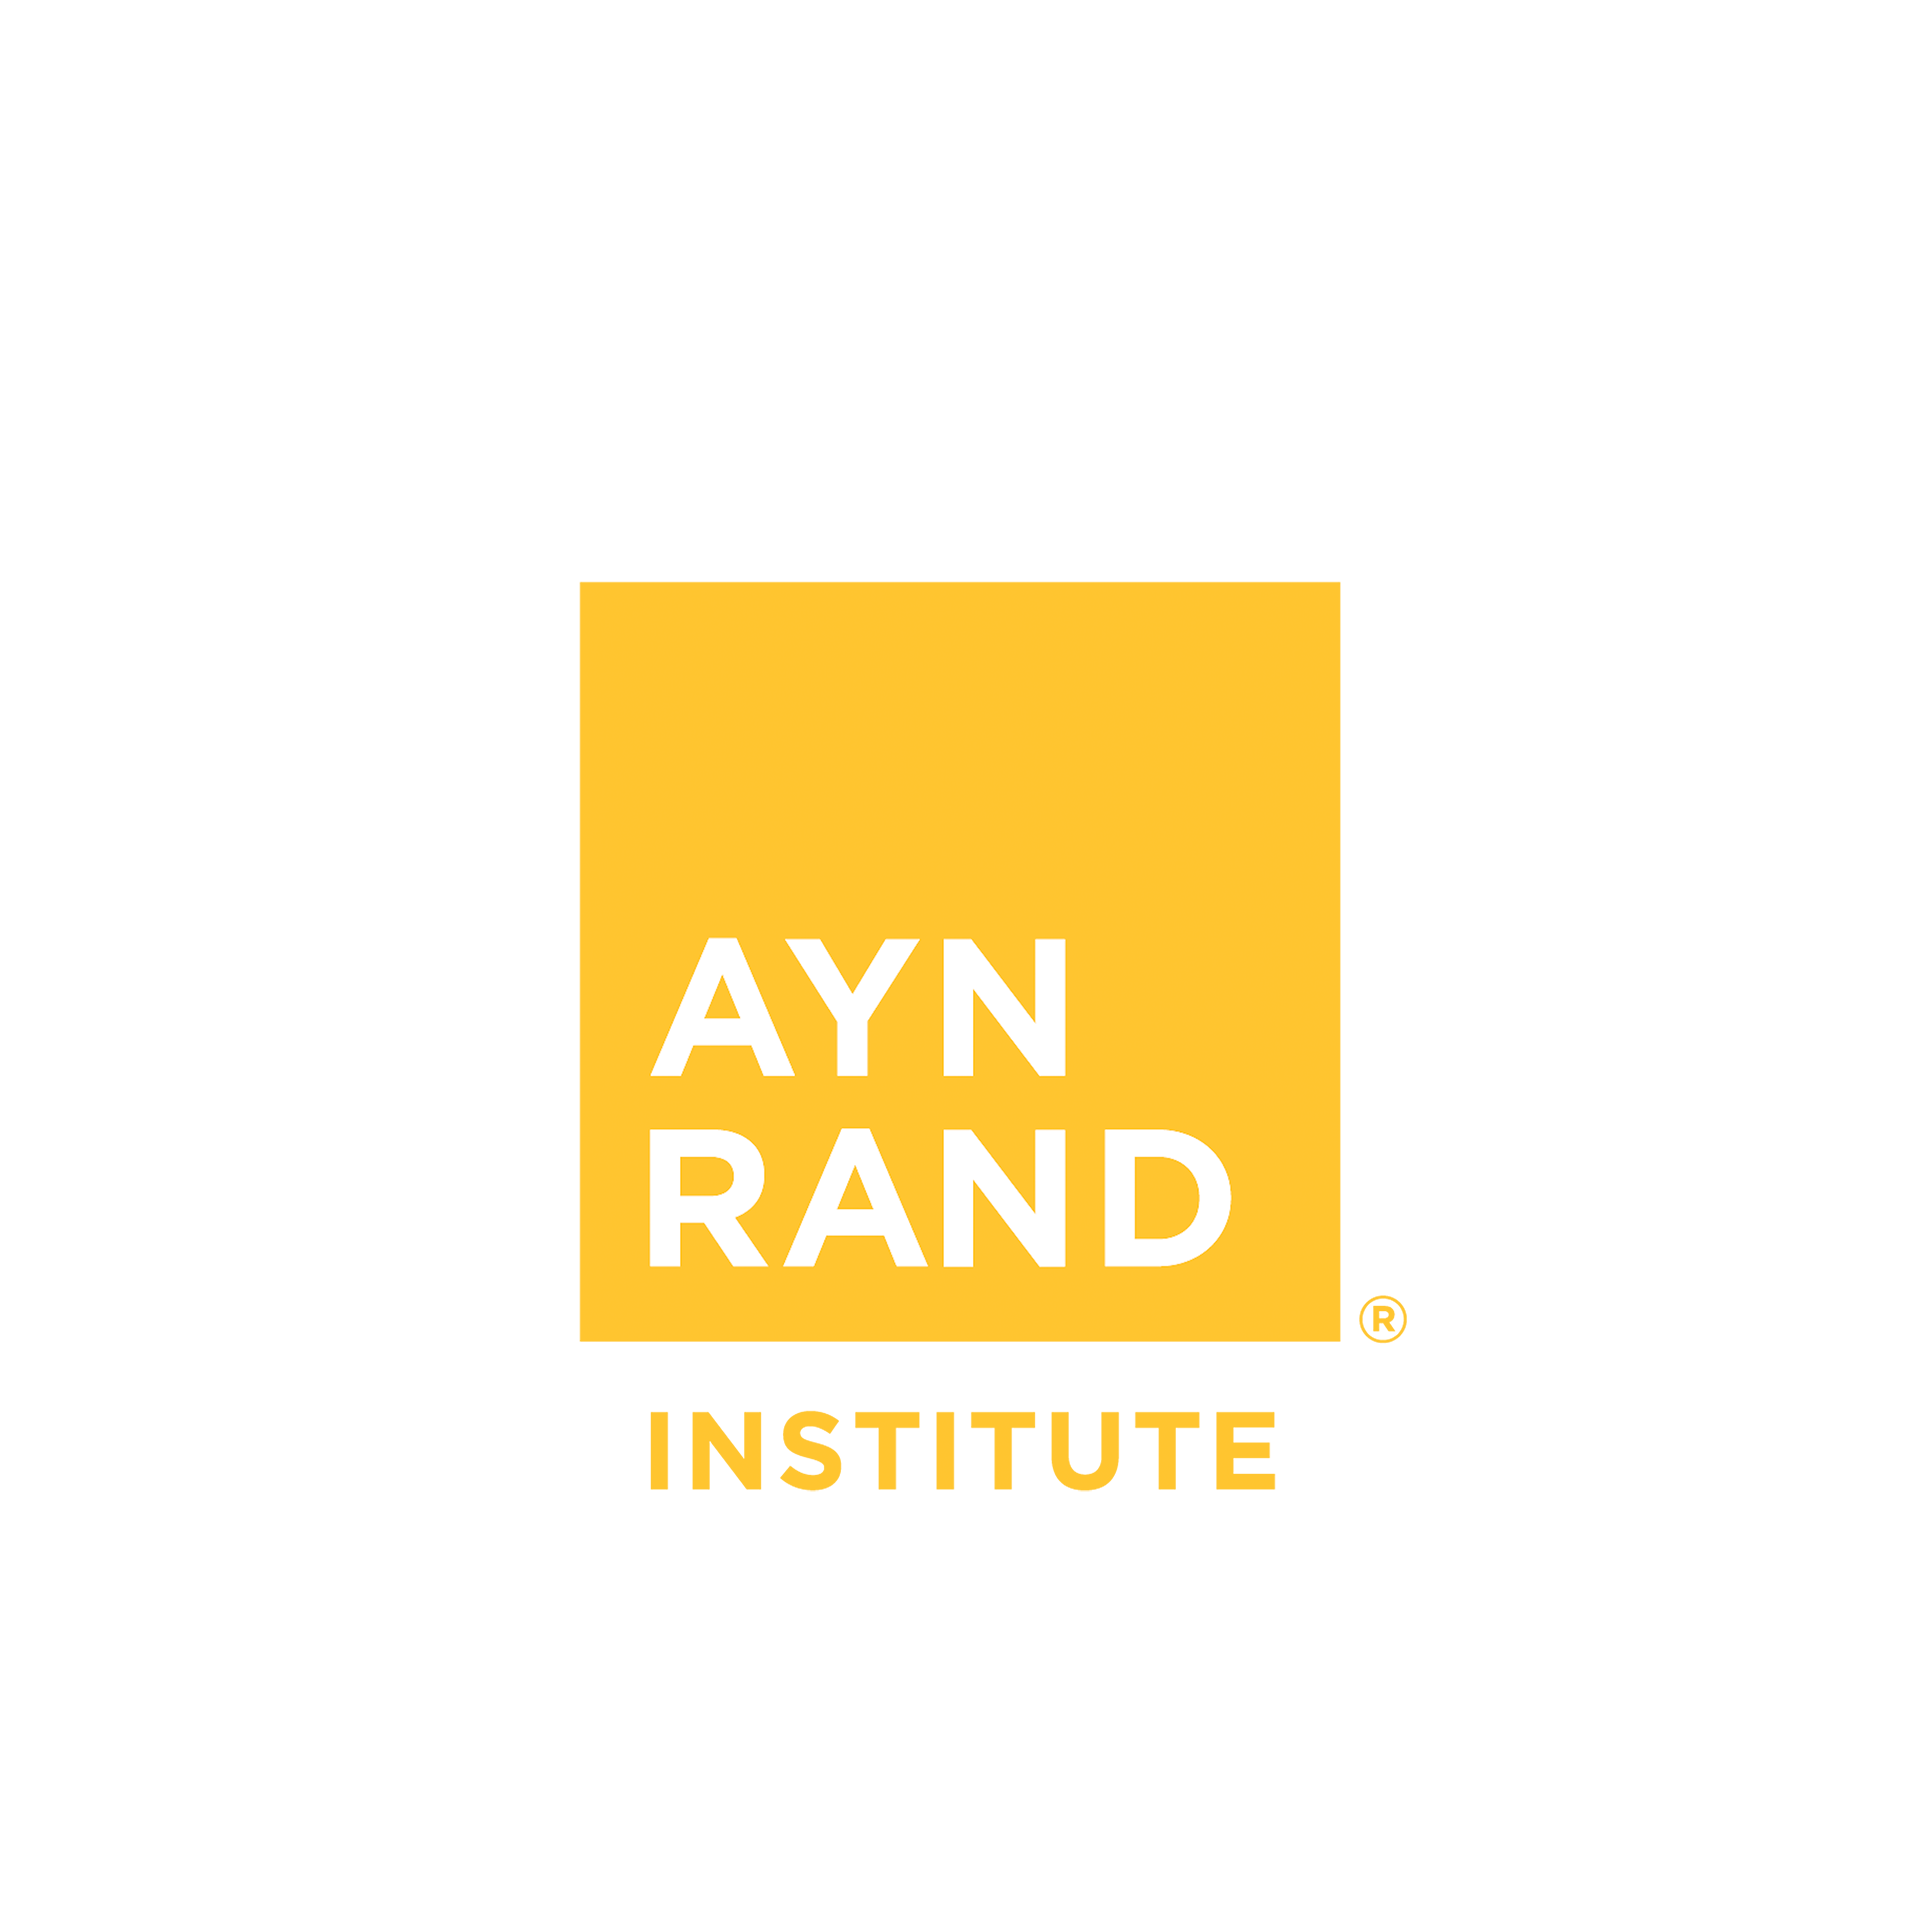 ayn rand essay contest fountainhead